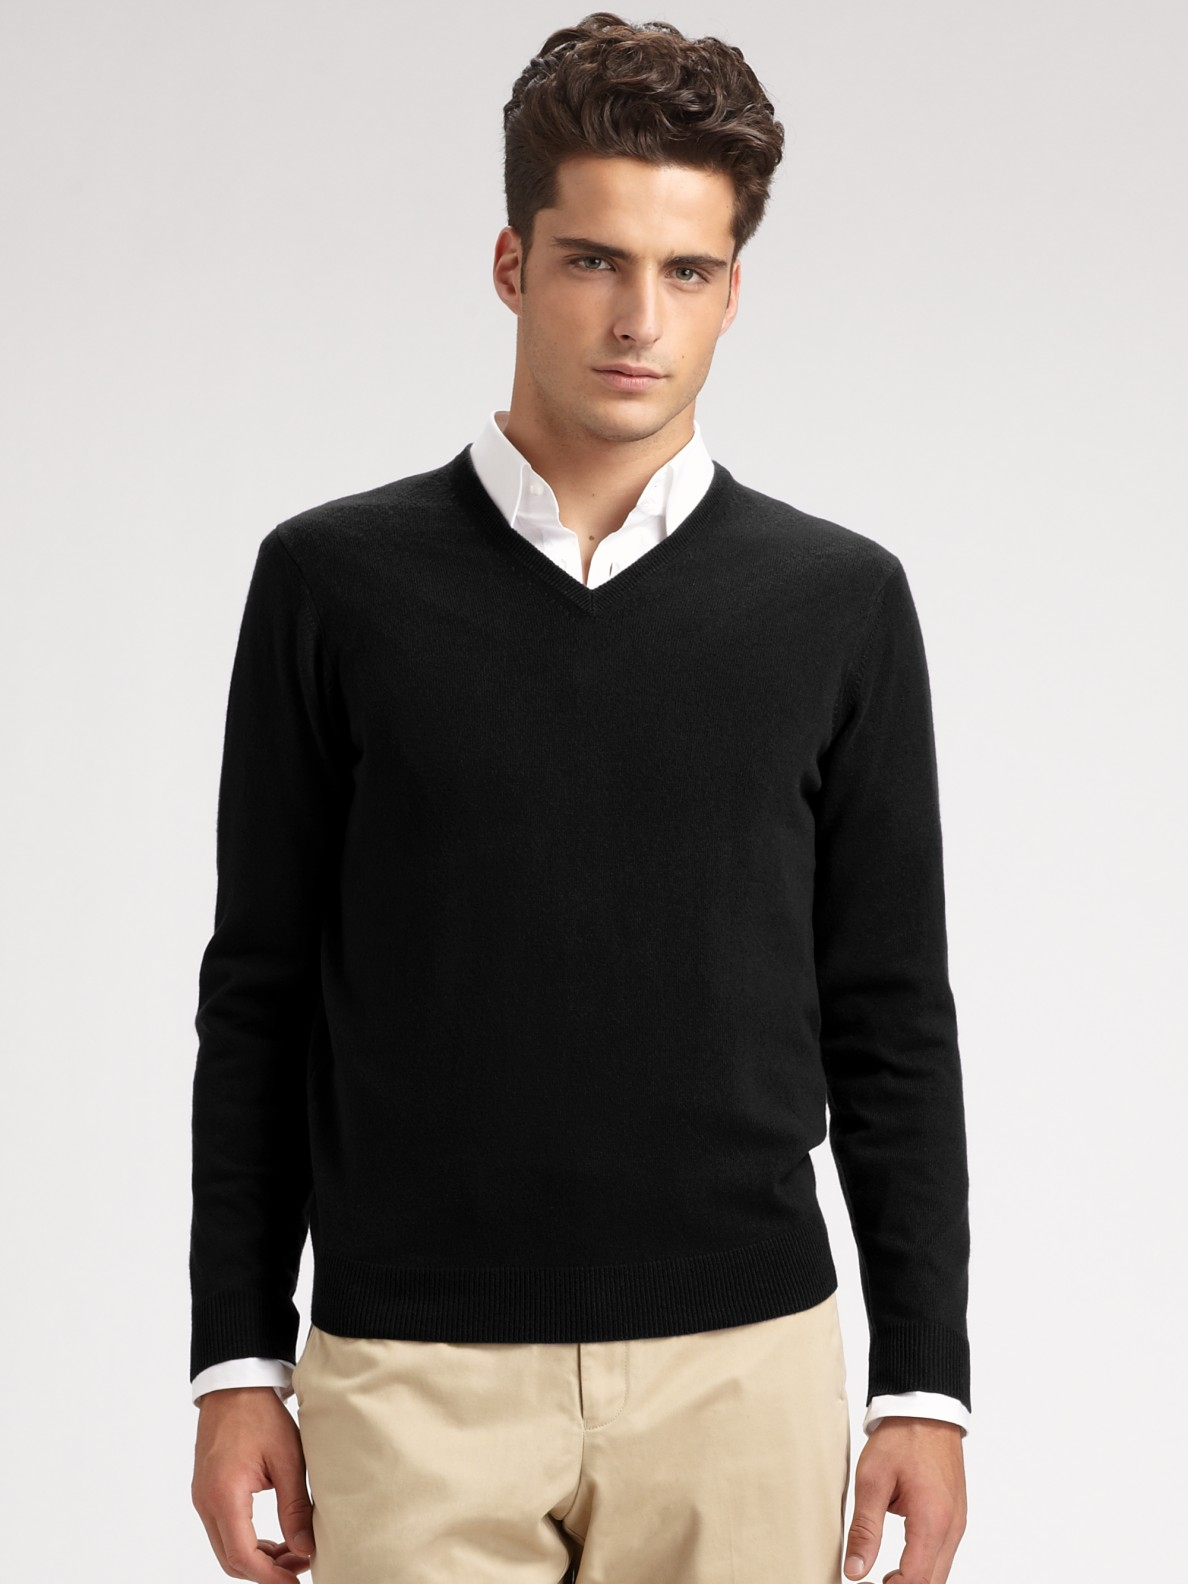 Jumper English Meaning : Sweater v jumper cardigan with buttons